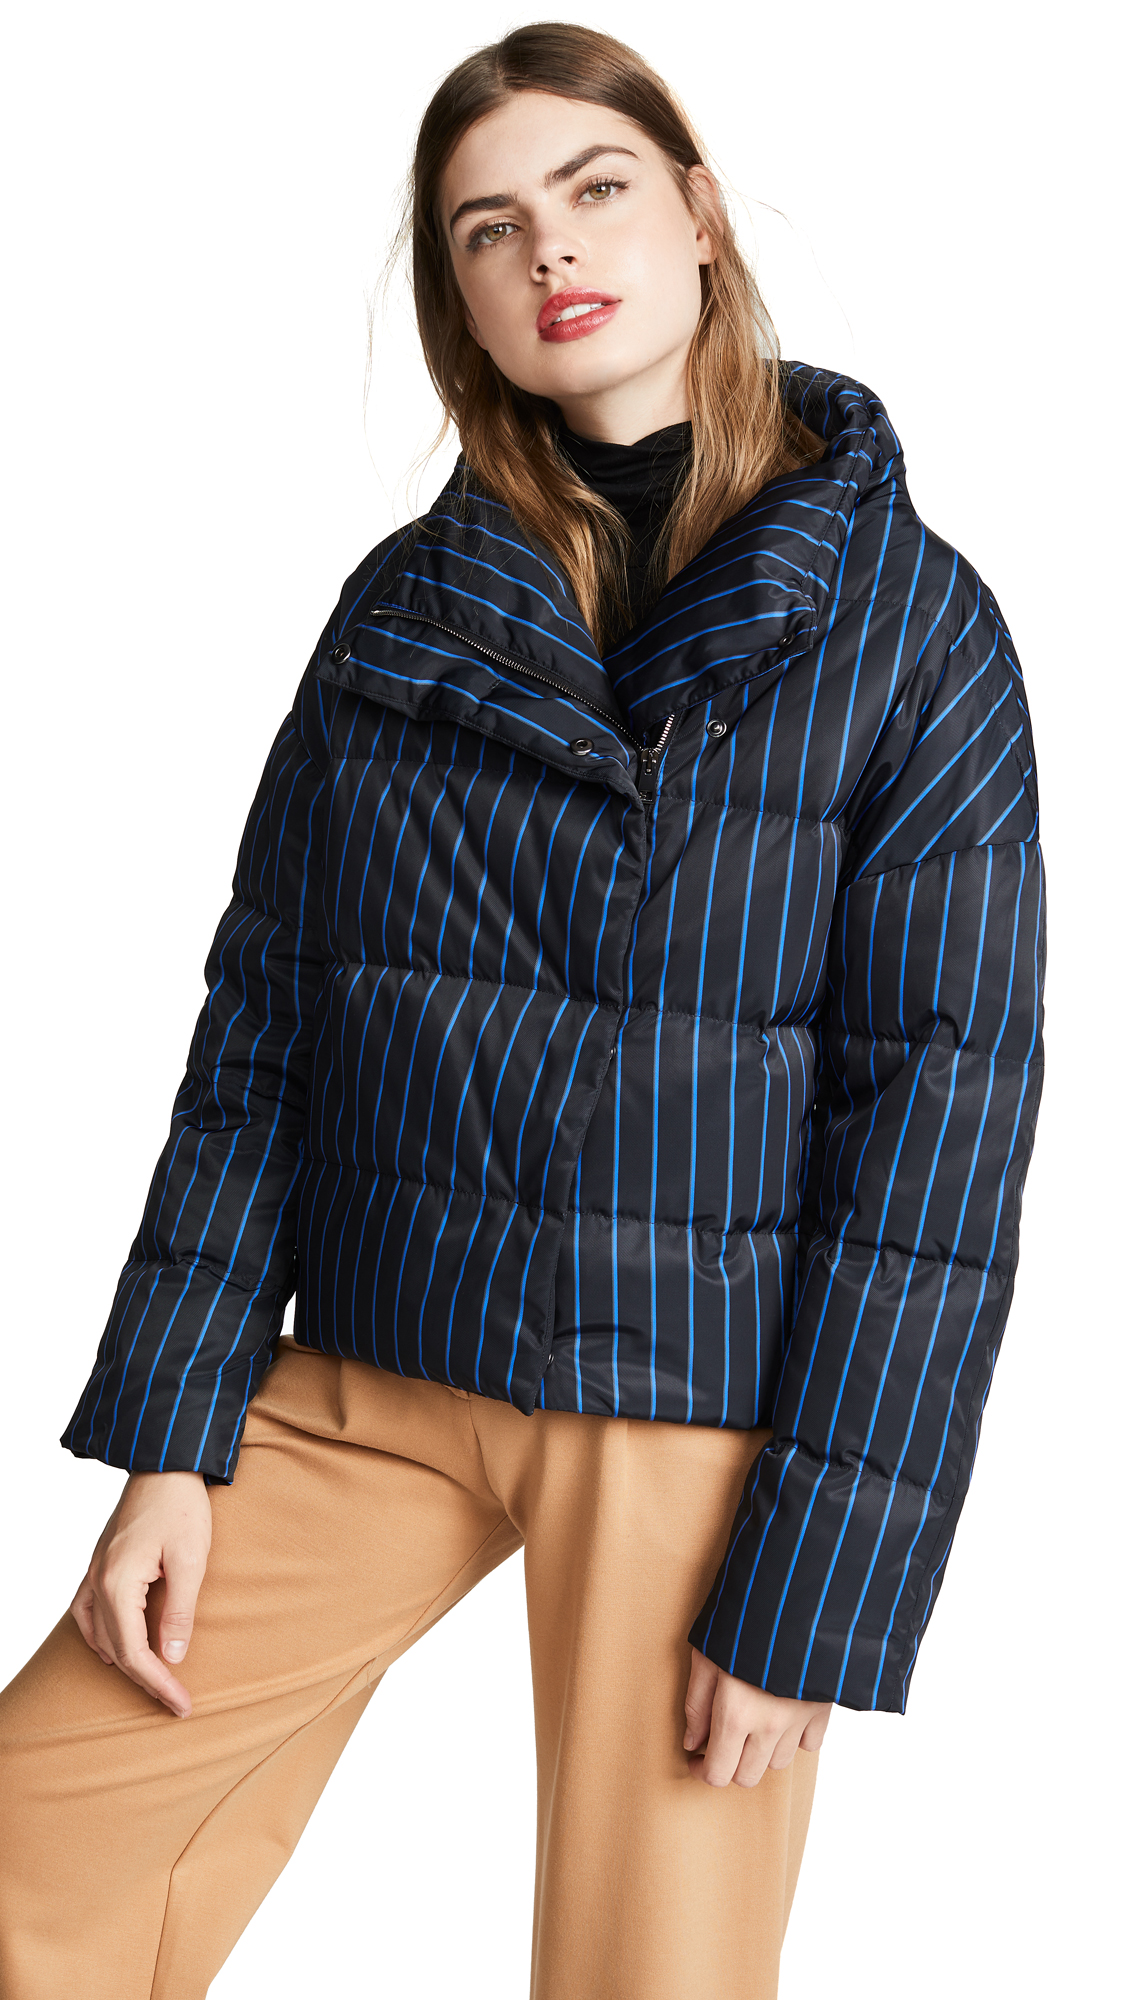 Theory Offset Puffer Coat In Black Multi